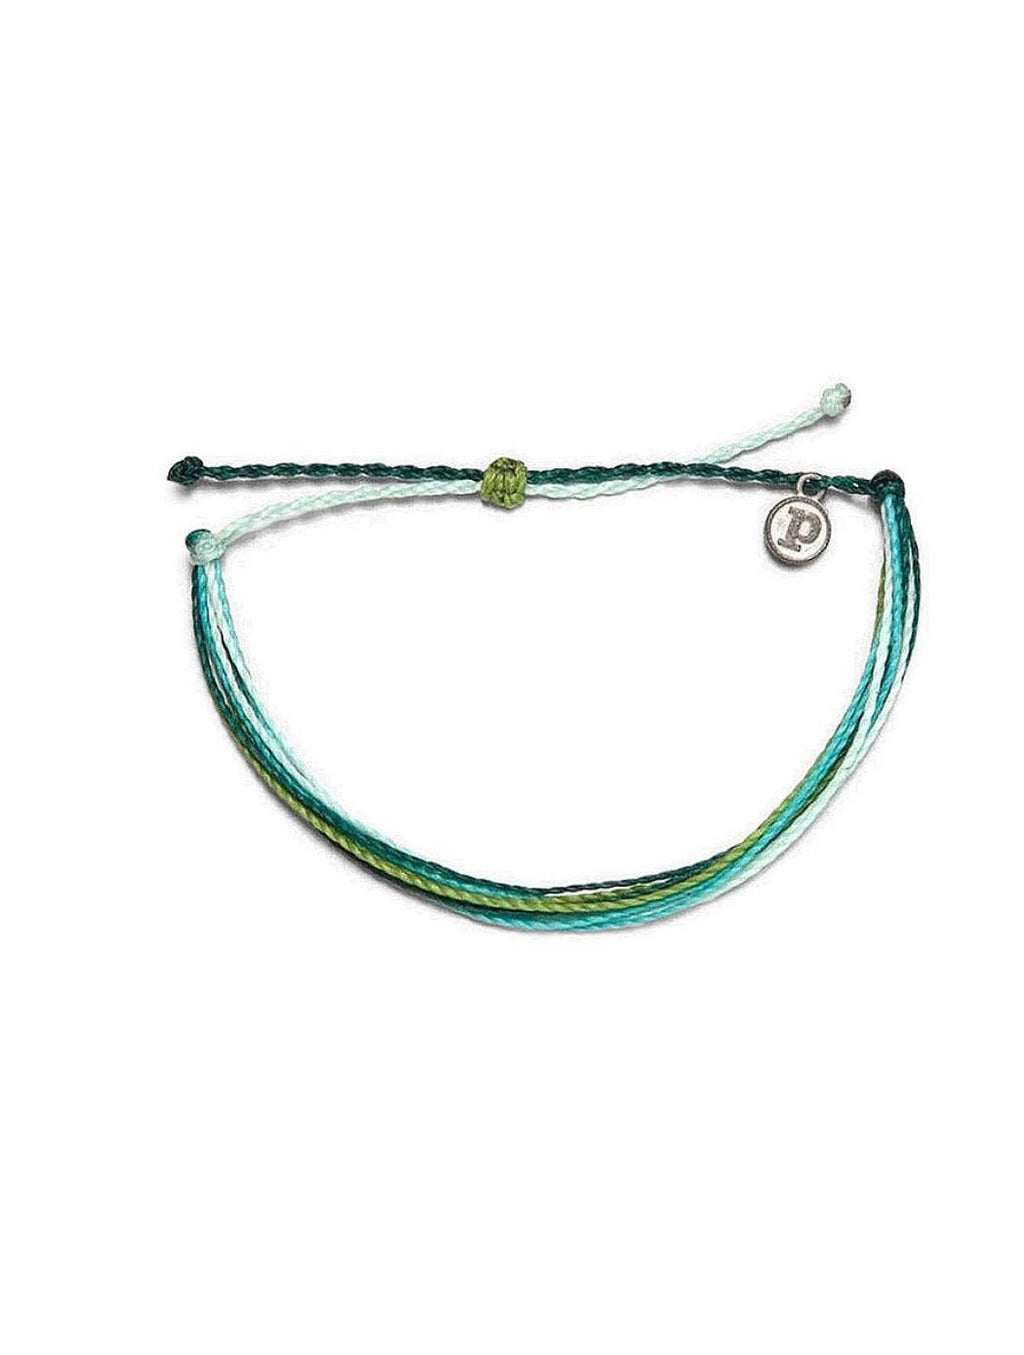 Pura Vida Original Bracelet in Blue/Green